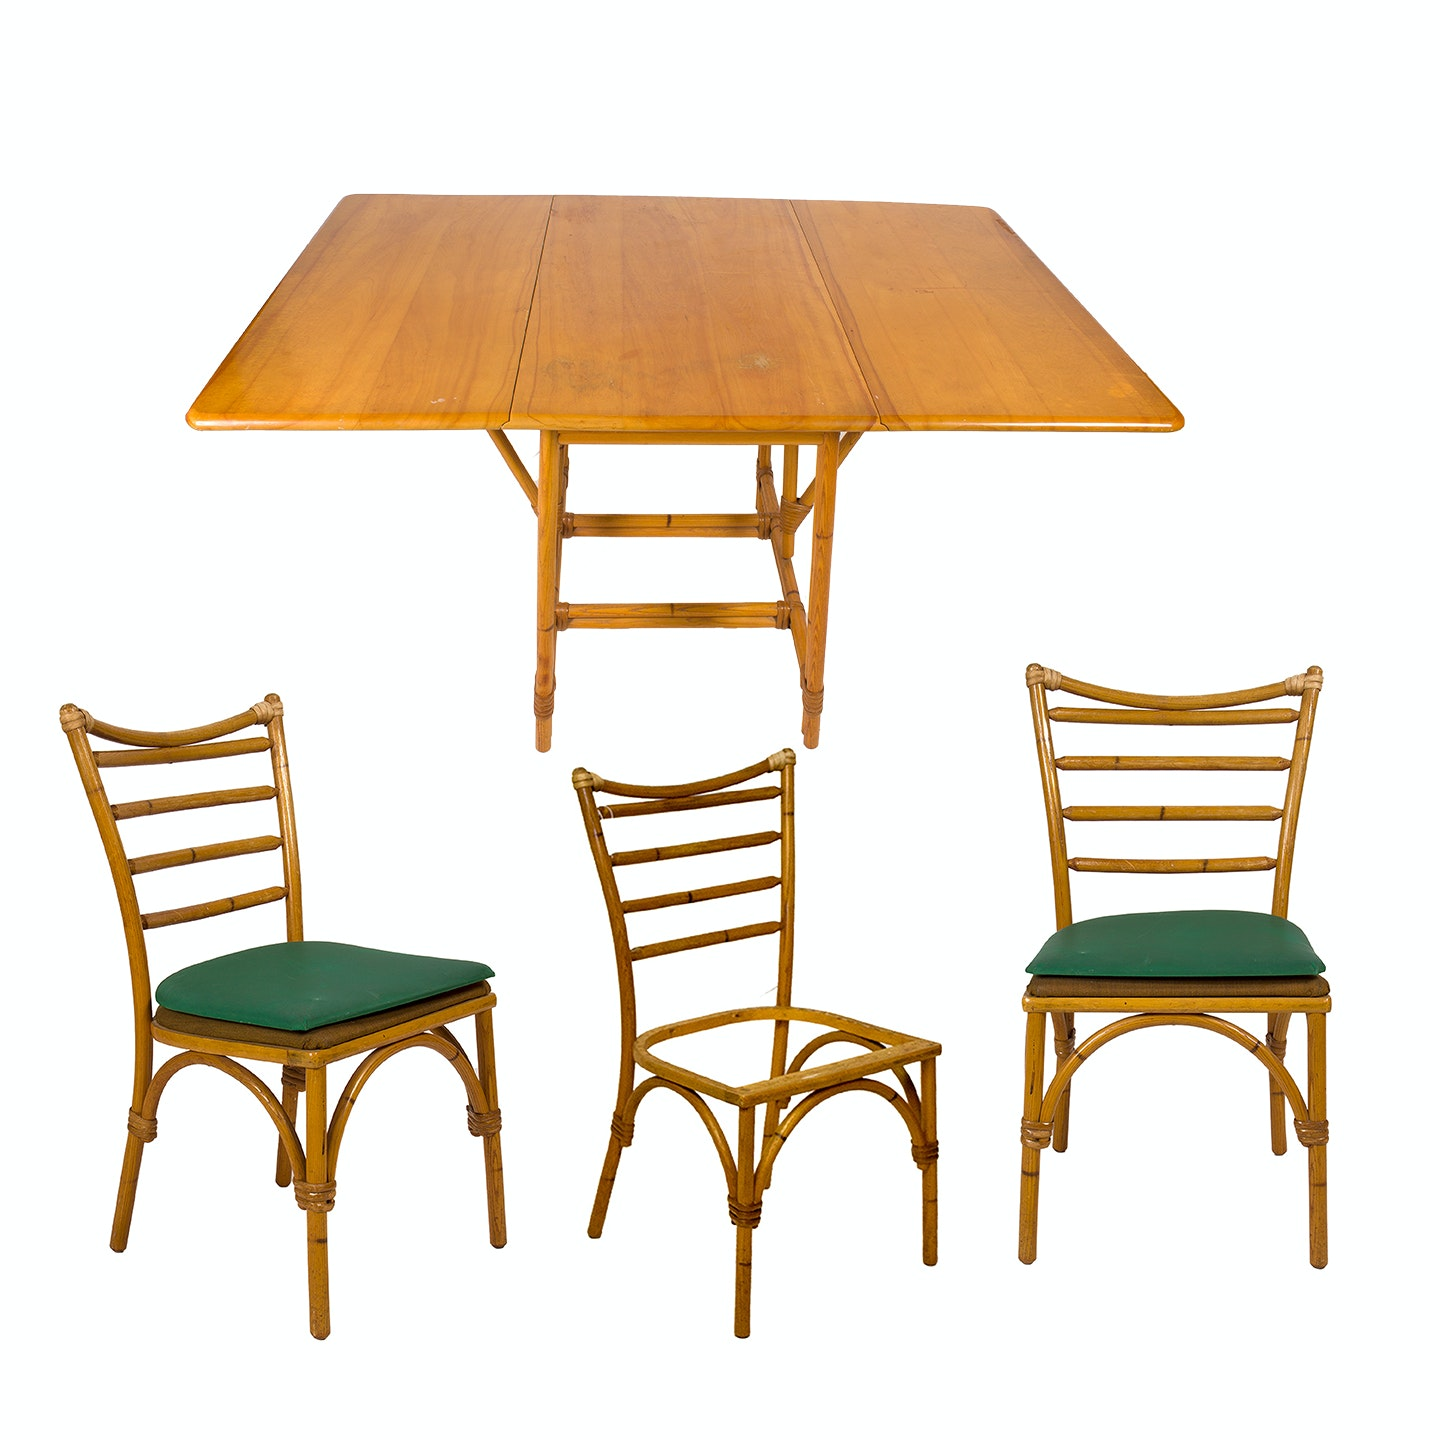 Vintage Heywood-Wakefield Drop Leaf Rattan Table and Chairs